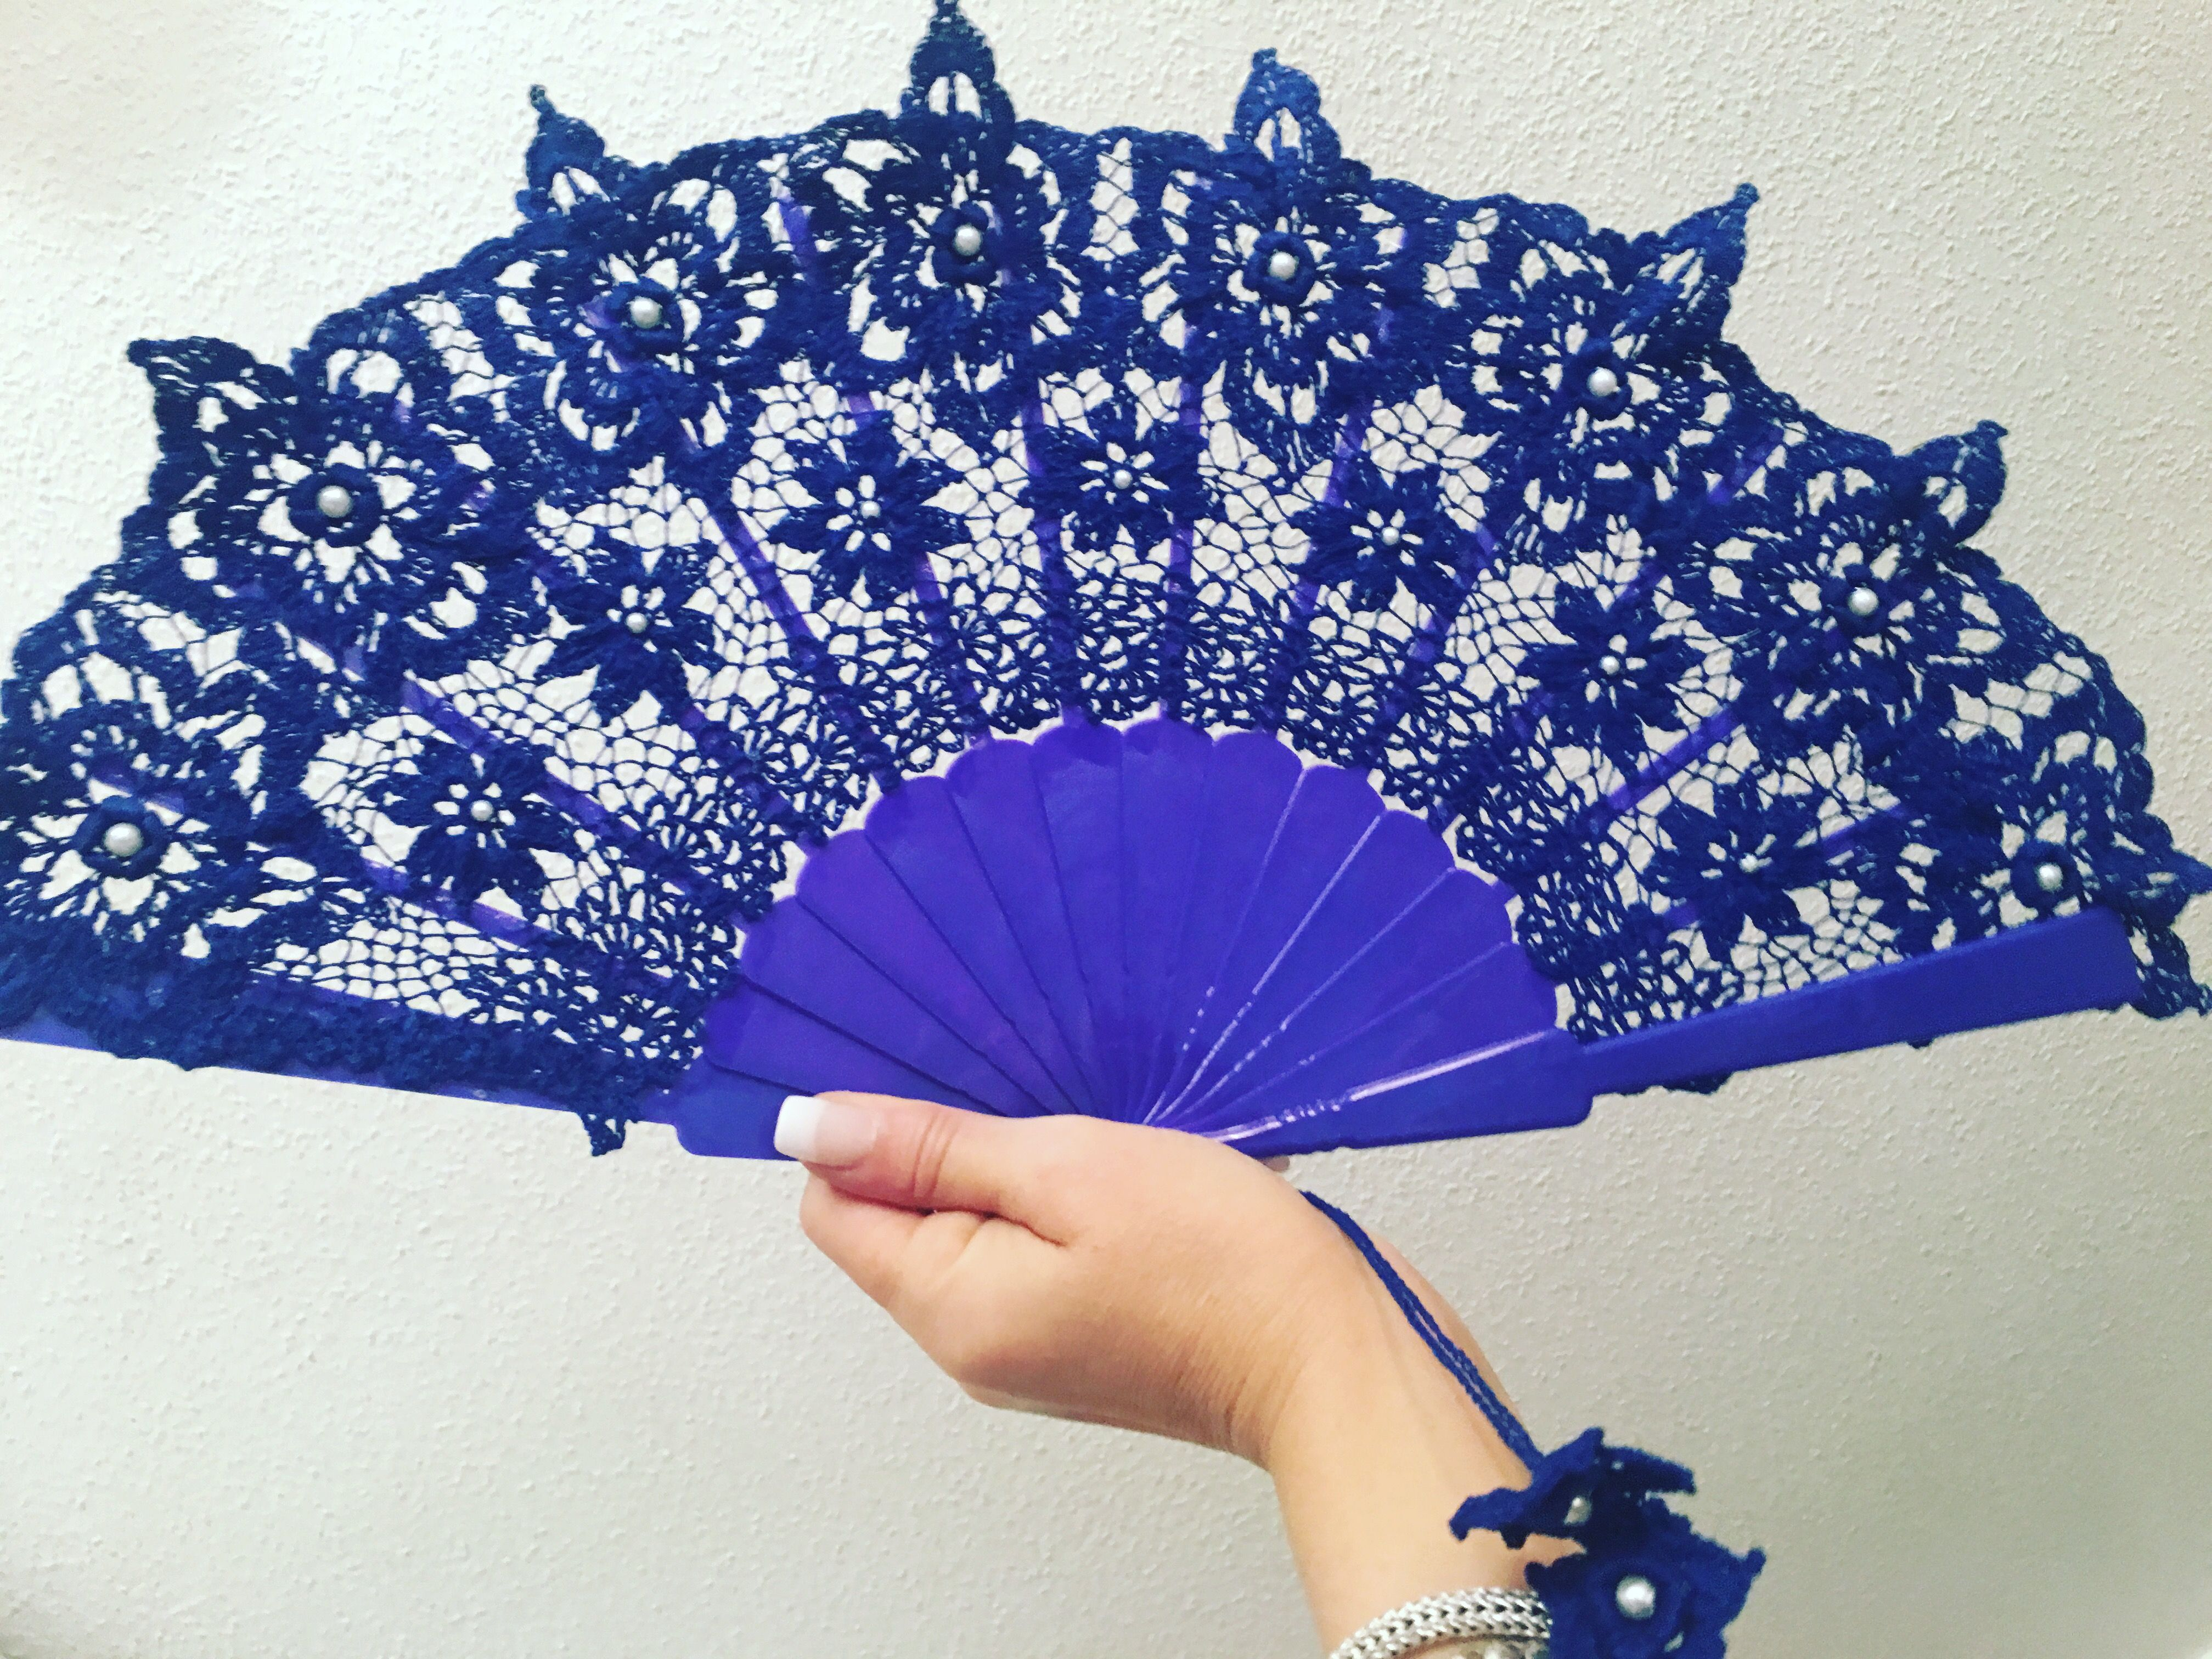 Pin by Maria Luisa Soria on 123 | Pinterest | Hand fans ...